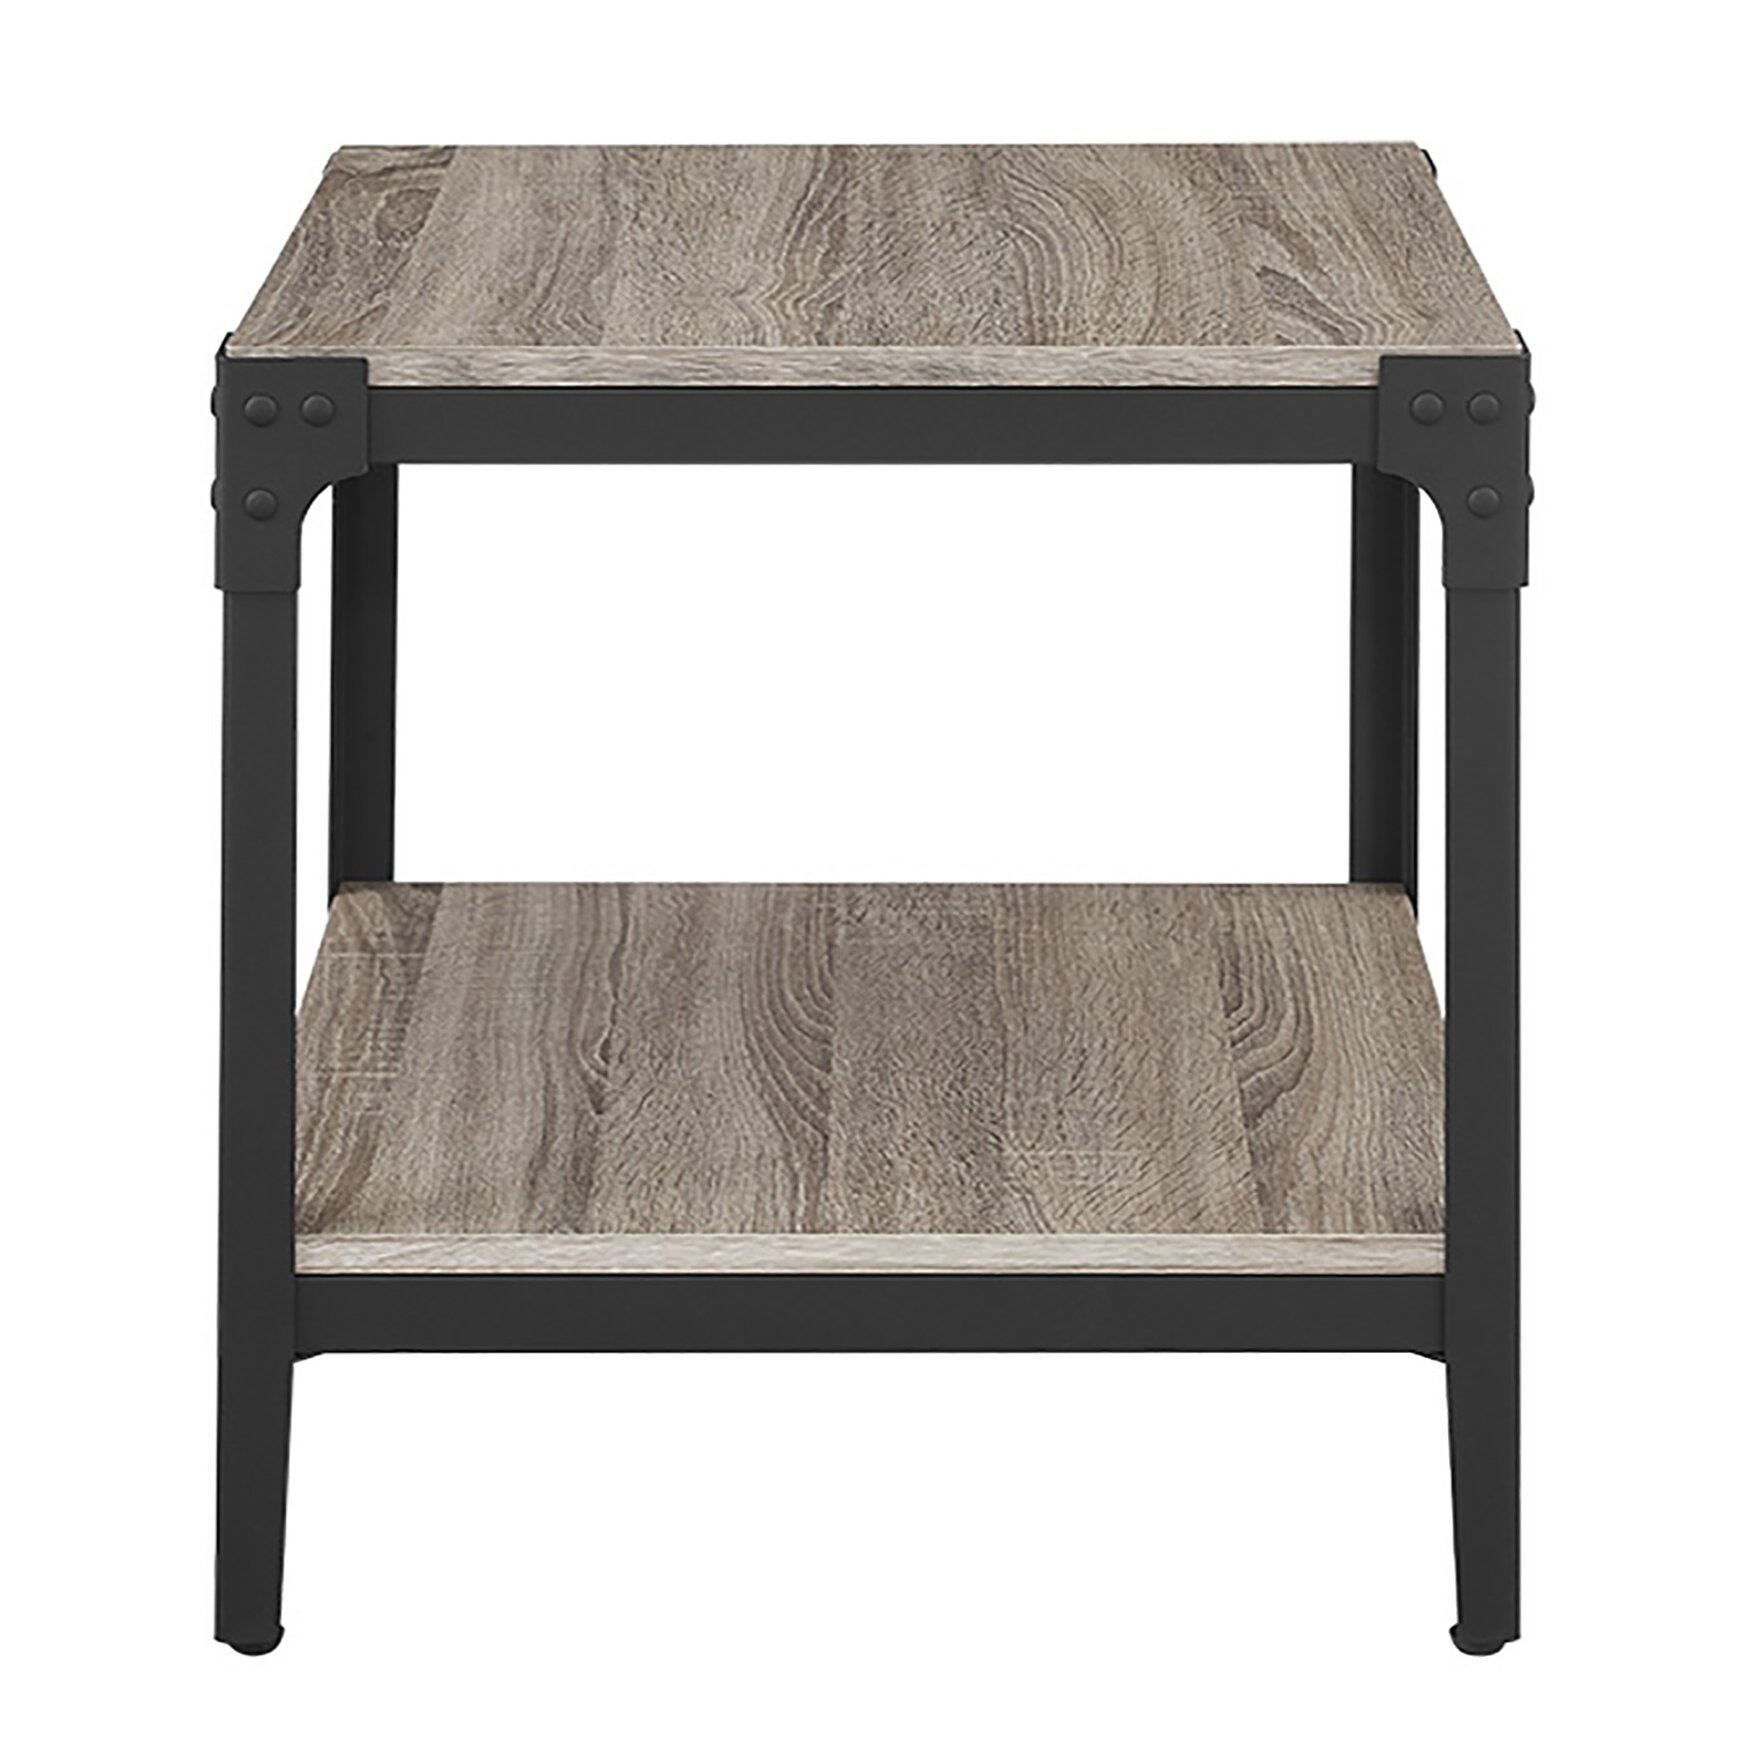 Rustic End Tables Interesting Storage For